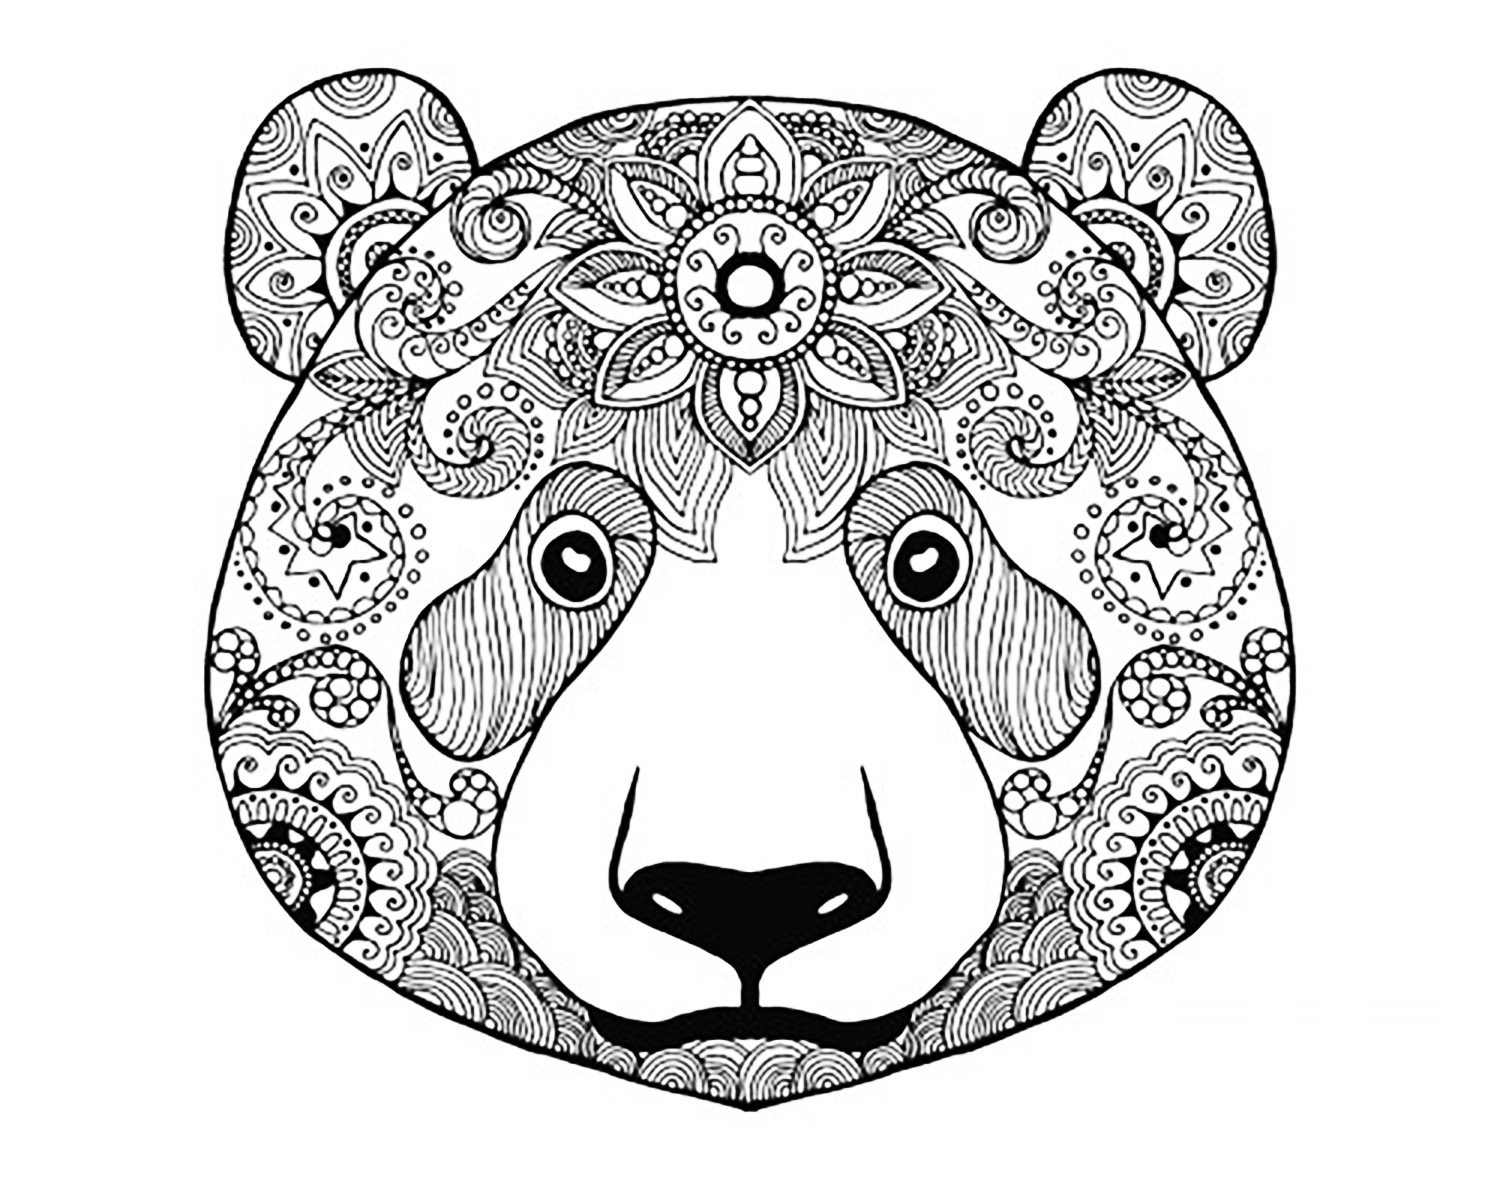 animal color sheet animal coloring pages for adults best coloring pages for animal sheet color